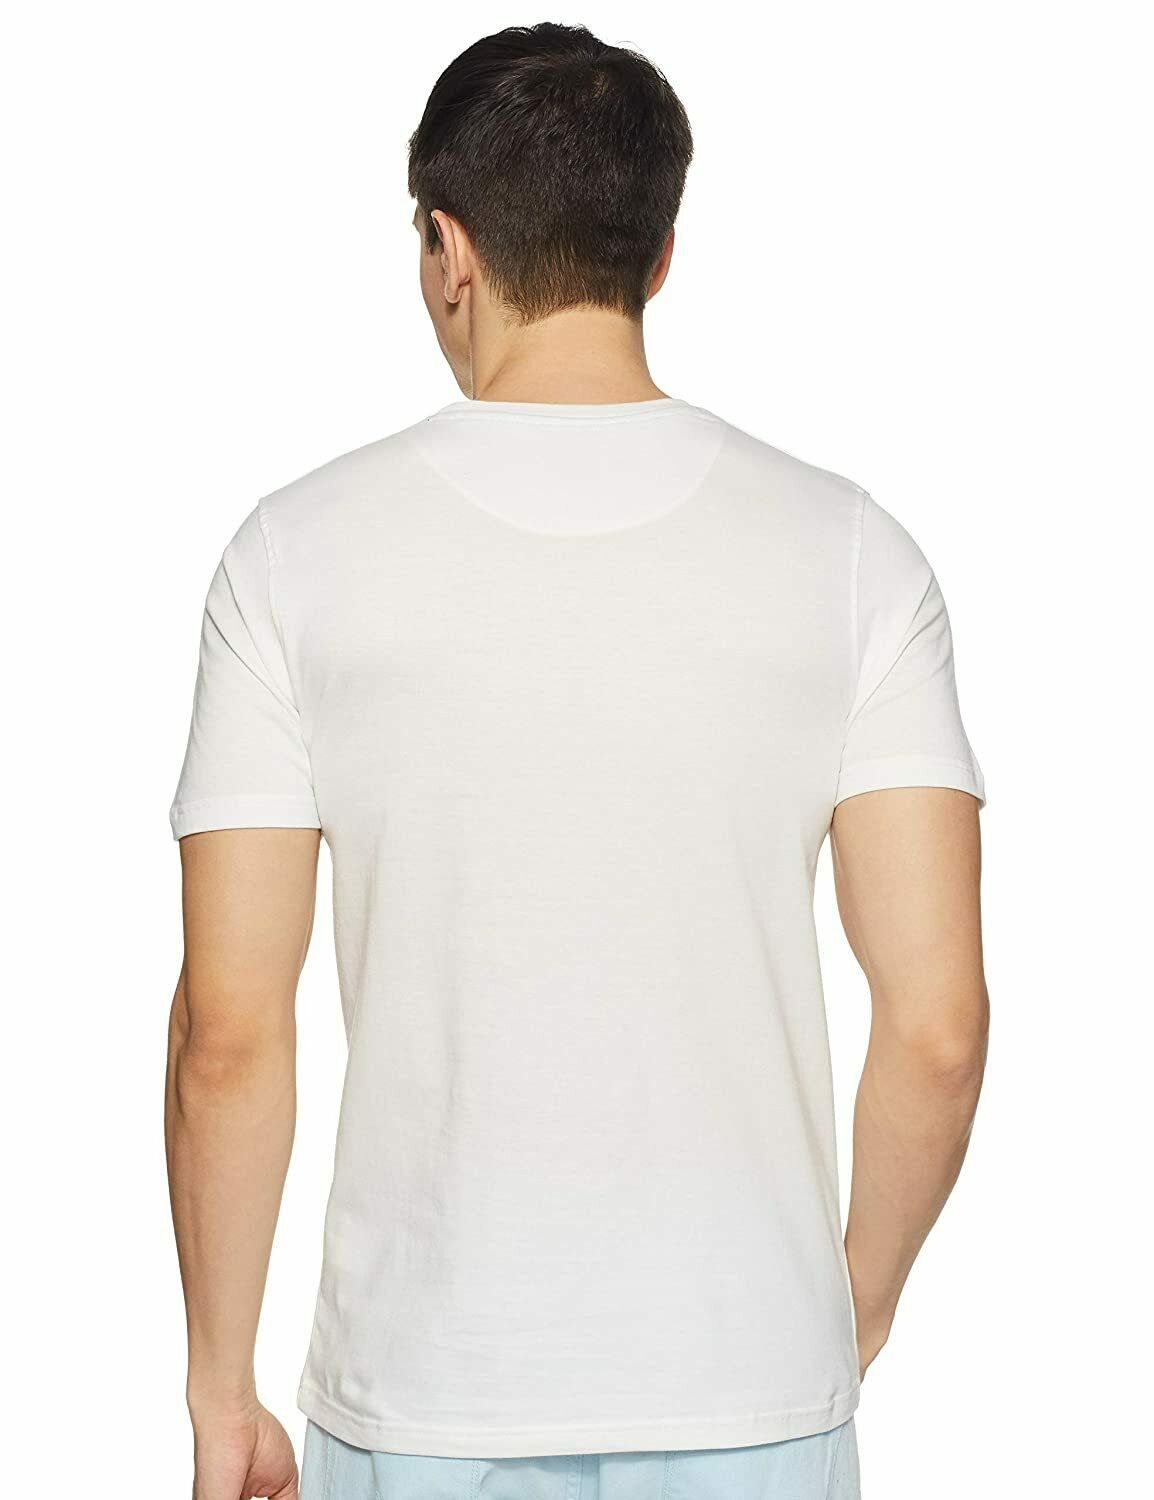 Cheap  Sublimation Printing 100% Cotton T Shirts Sports Apparel